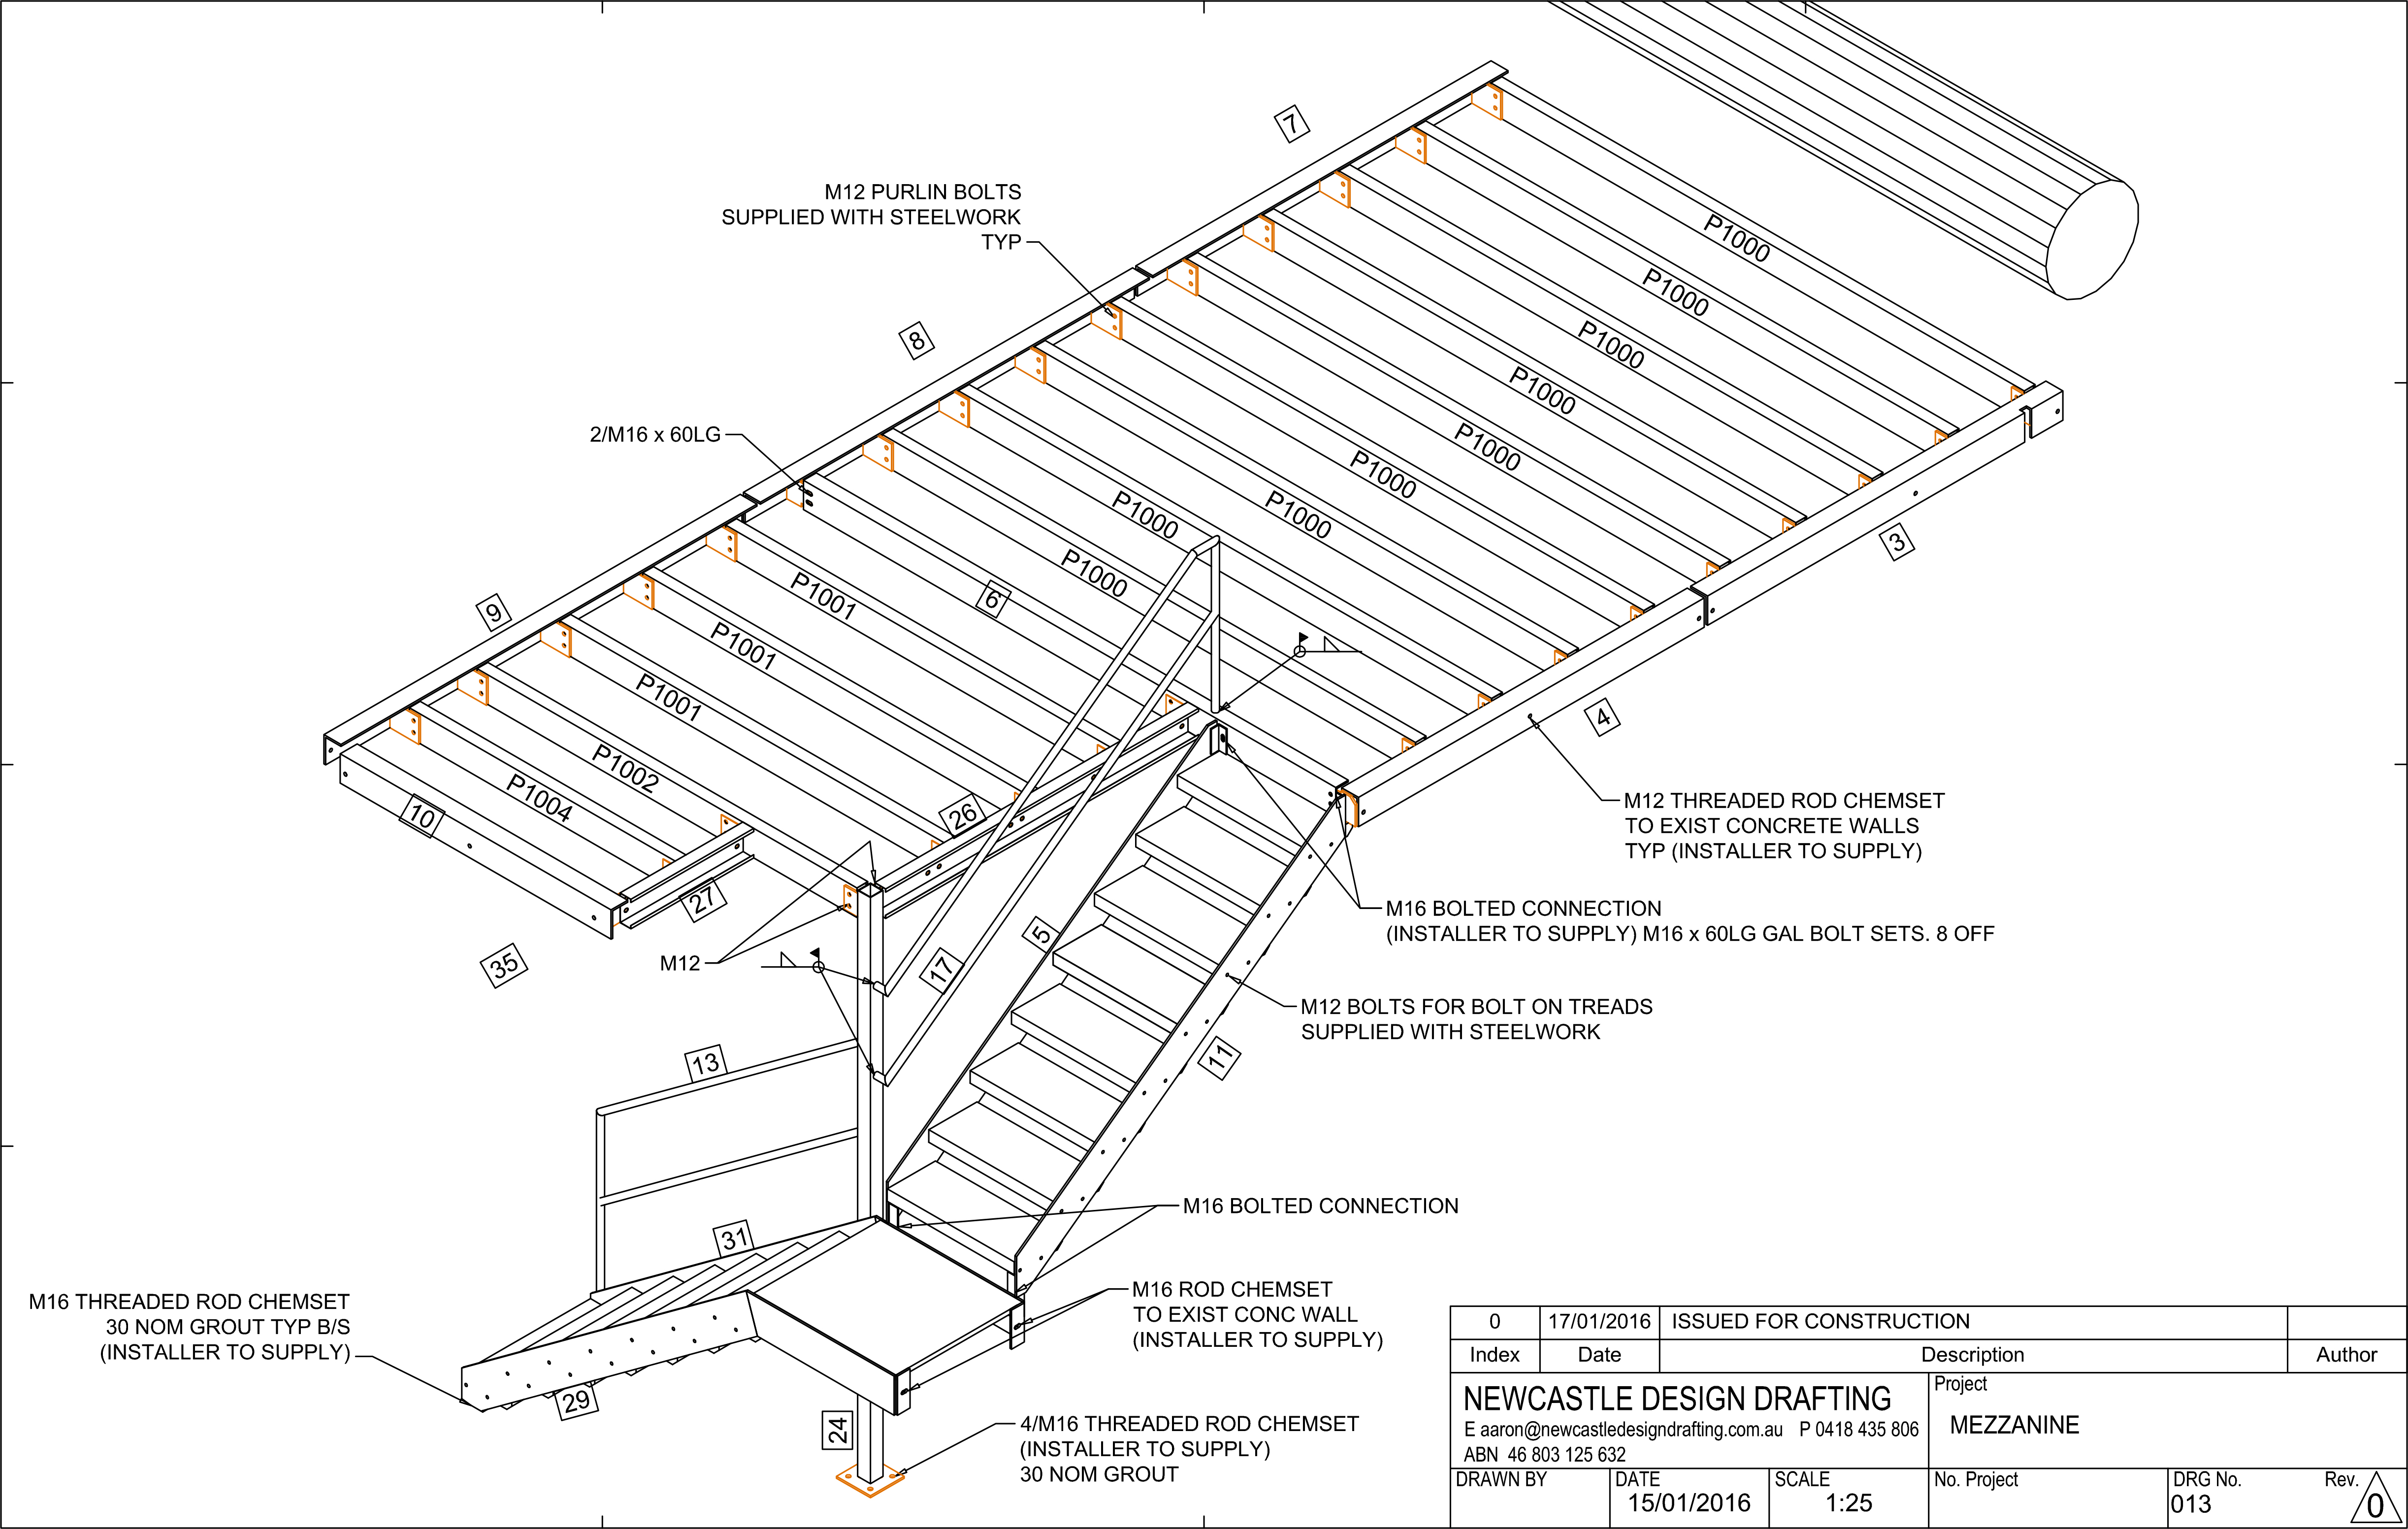 Shop Detailing By Newcastle Design Drafting